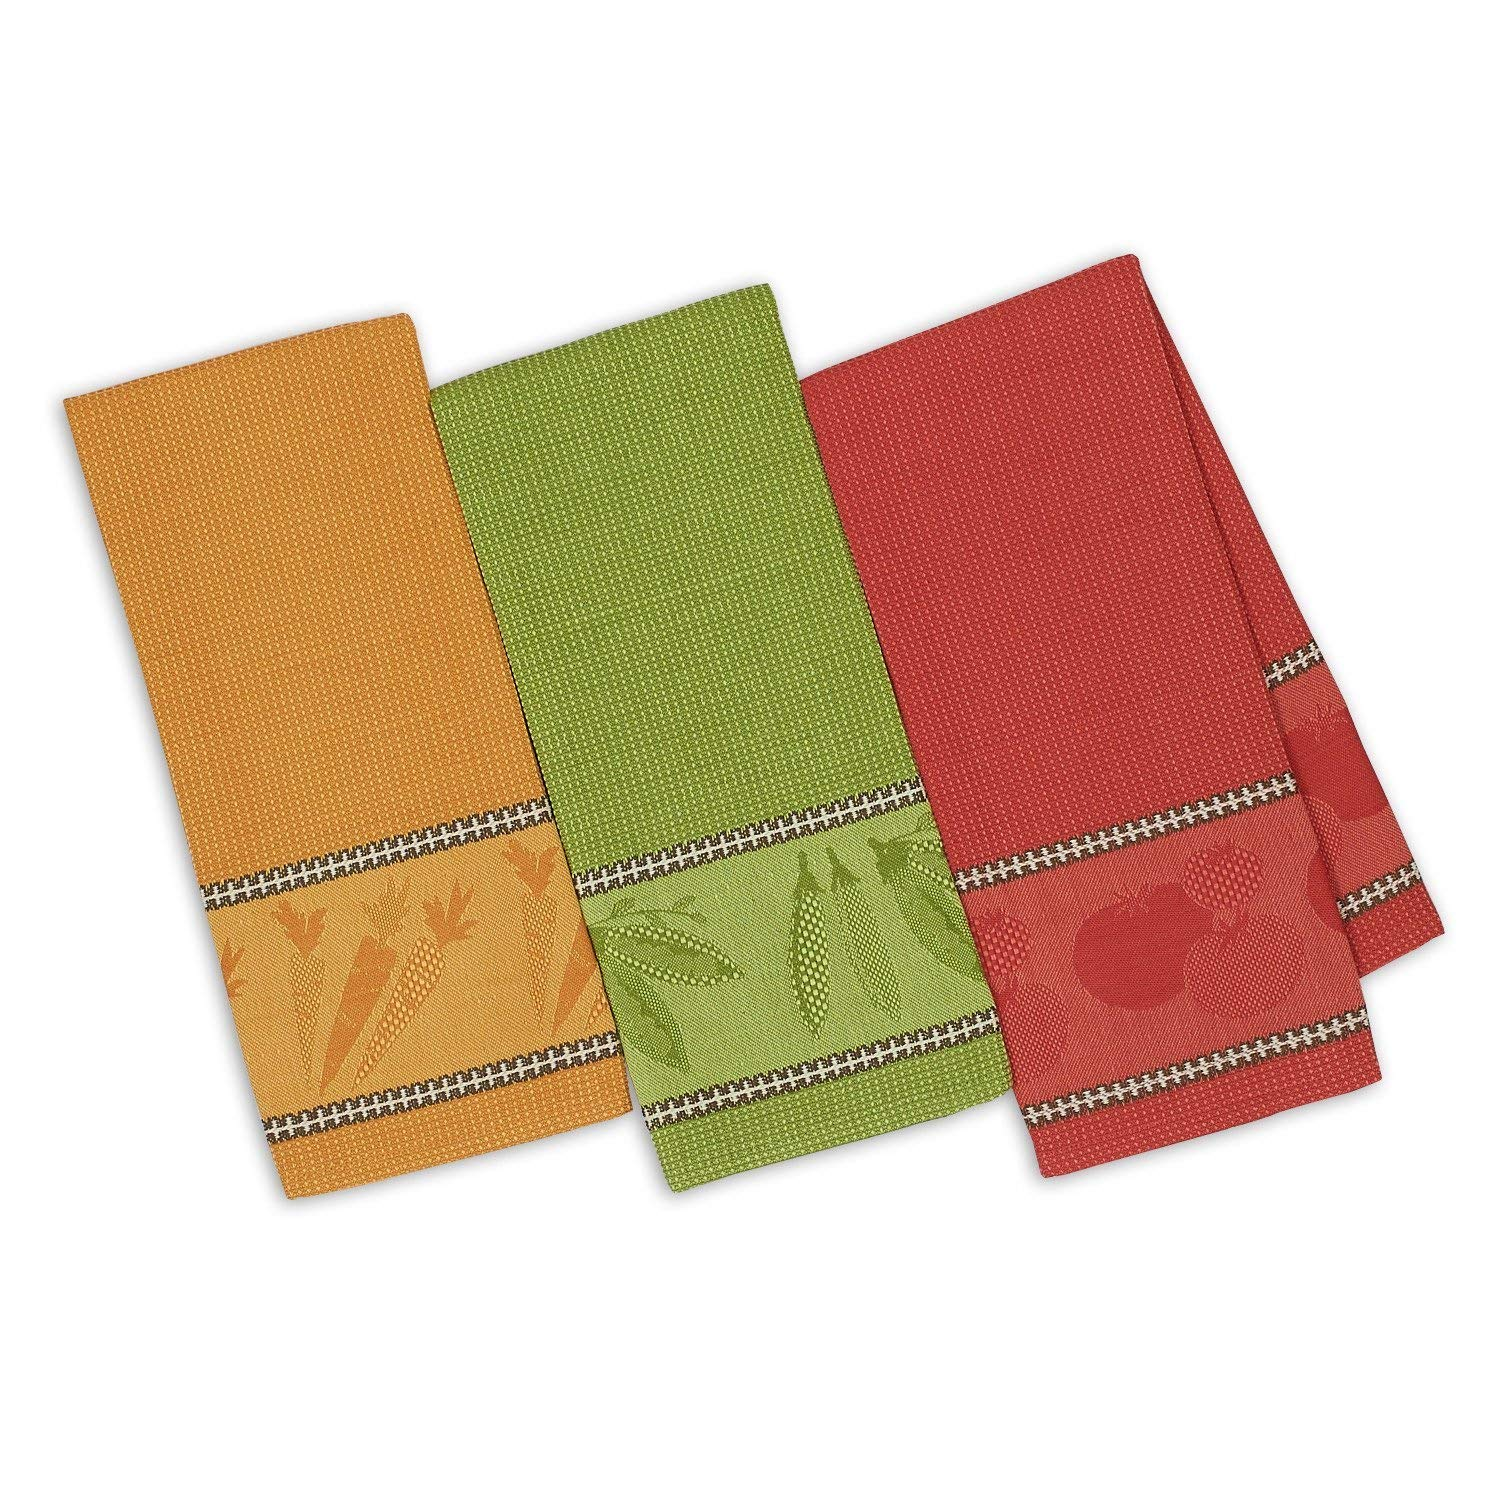 Design Imports DII Jacquard Dish Towels Veggie Garden Set of 3 Coral Green Yellow